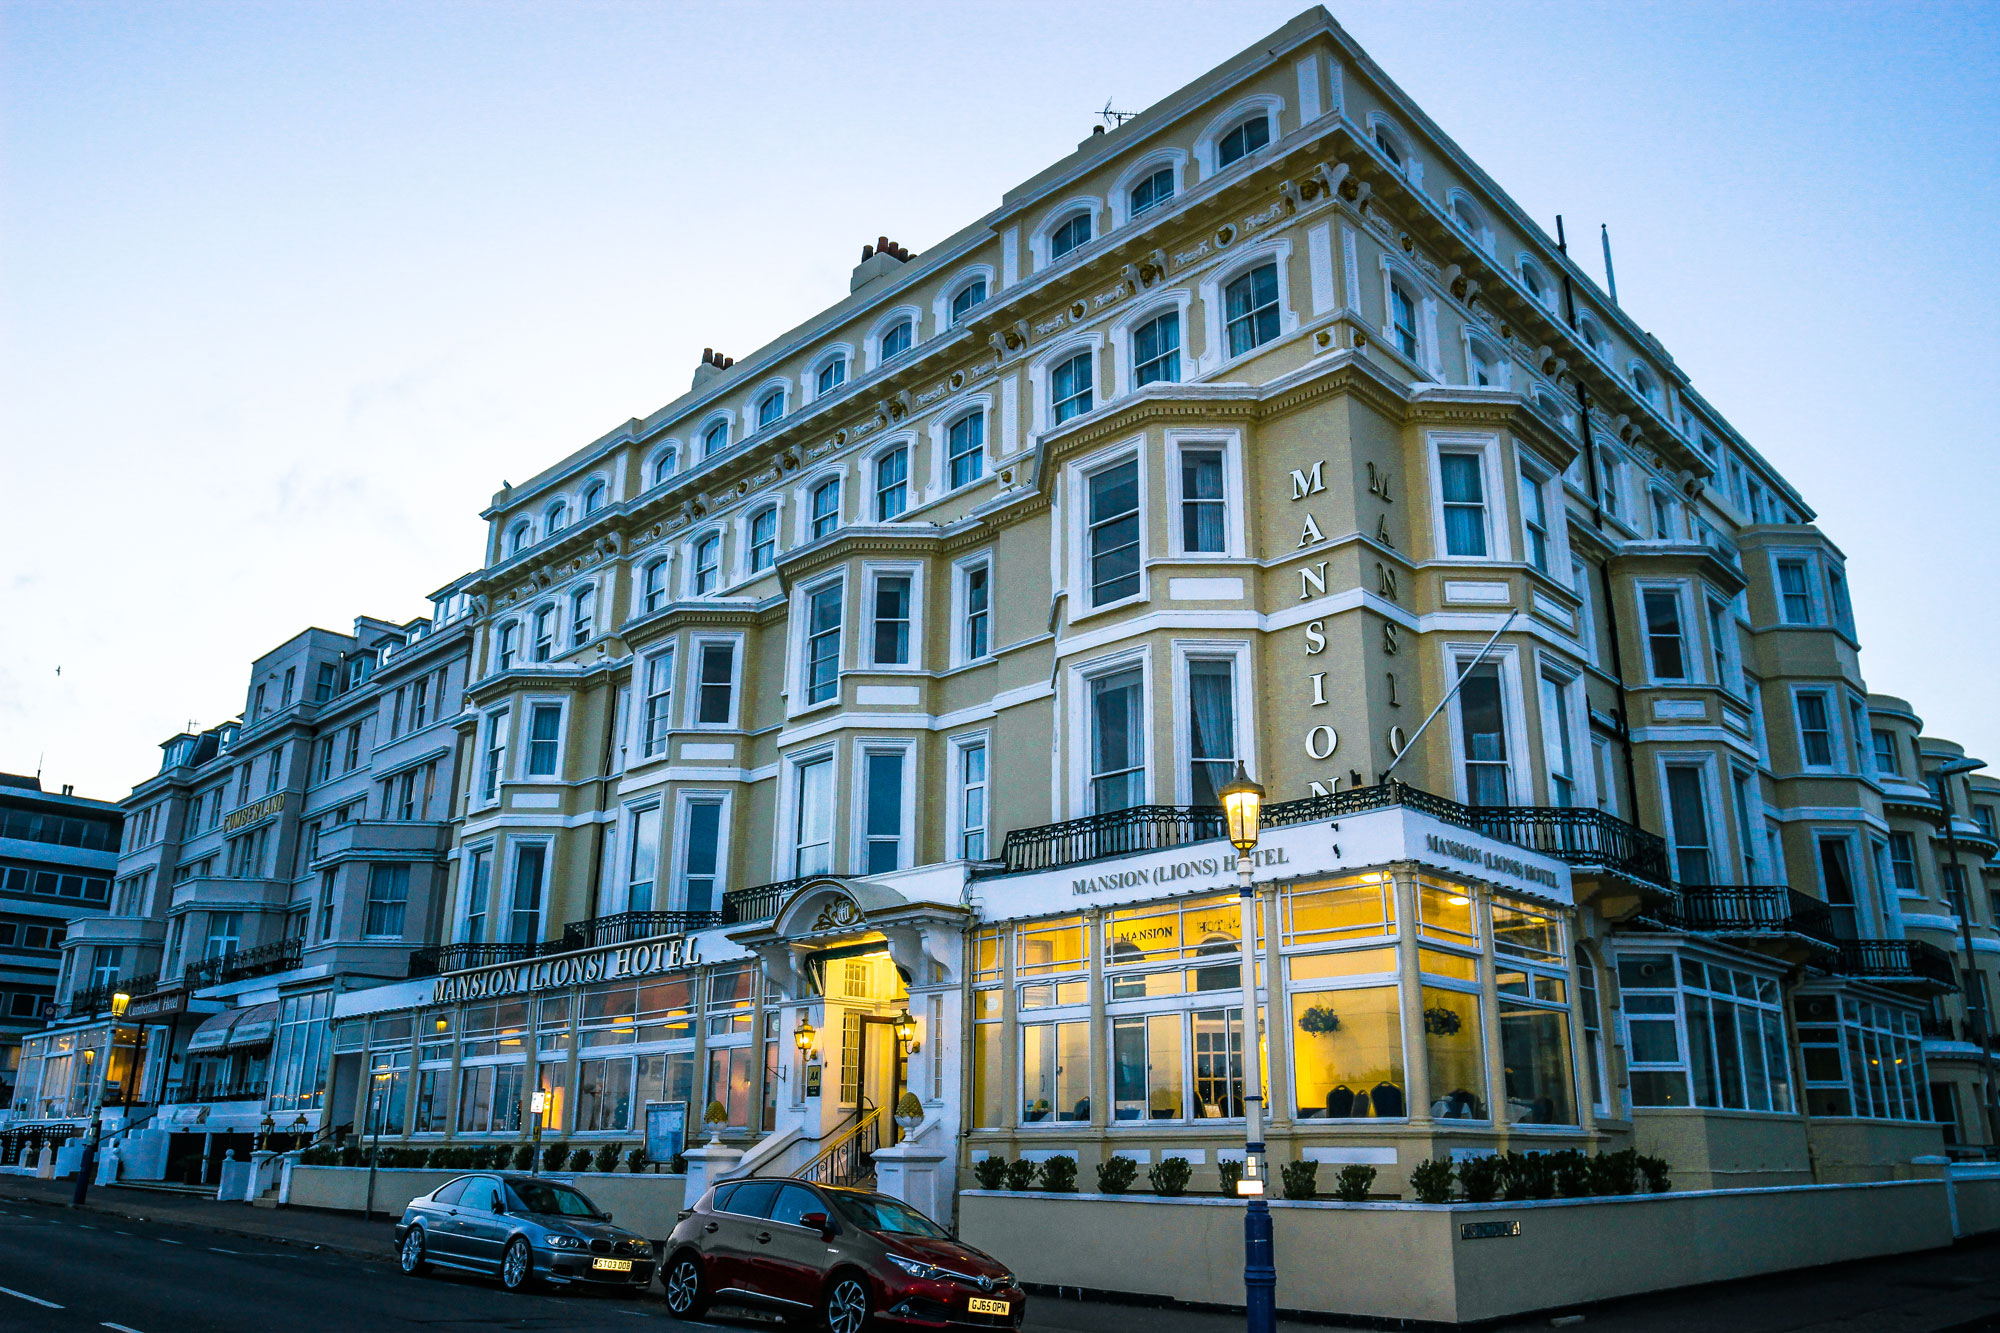 Picture of the Mansion Hotel Eastbourne, East Sussex - Lions Group